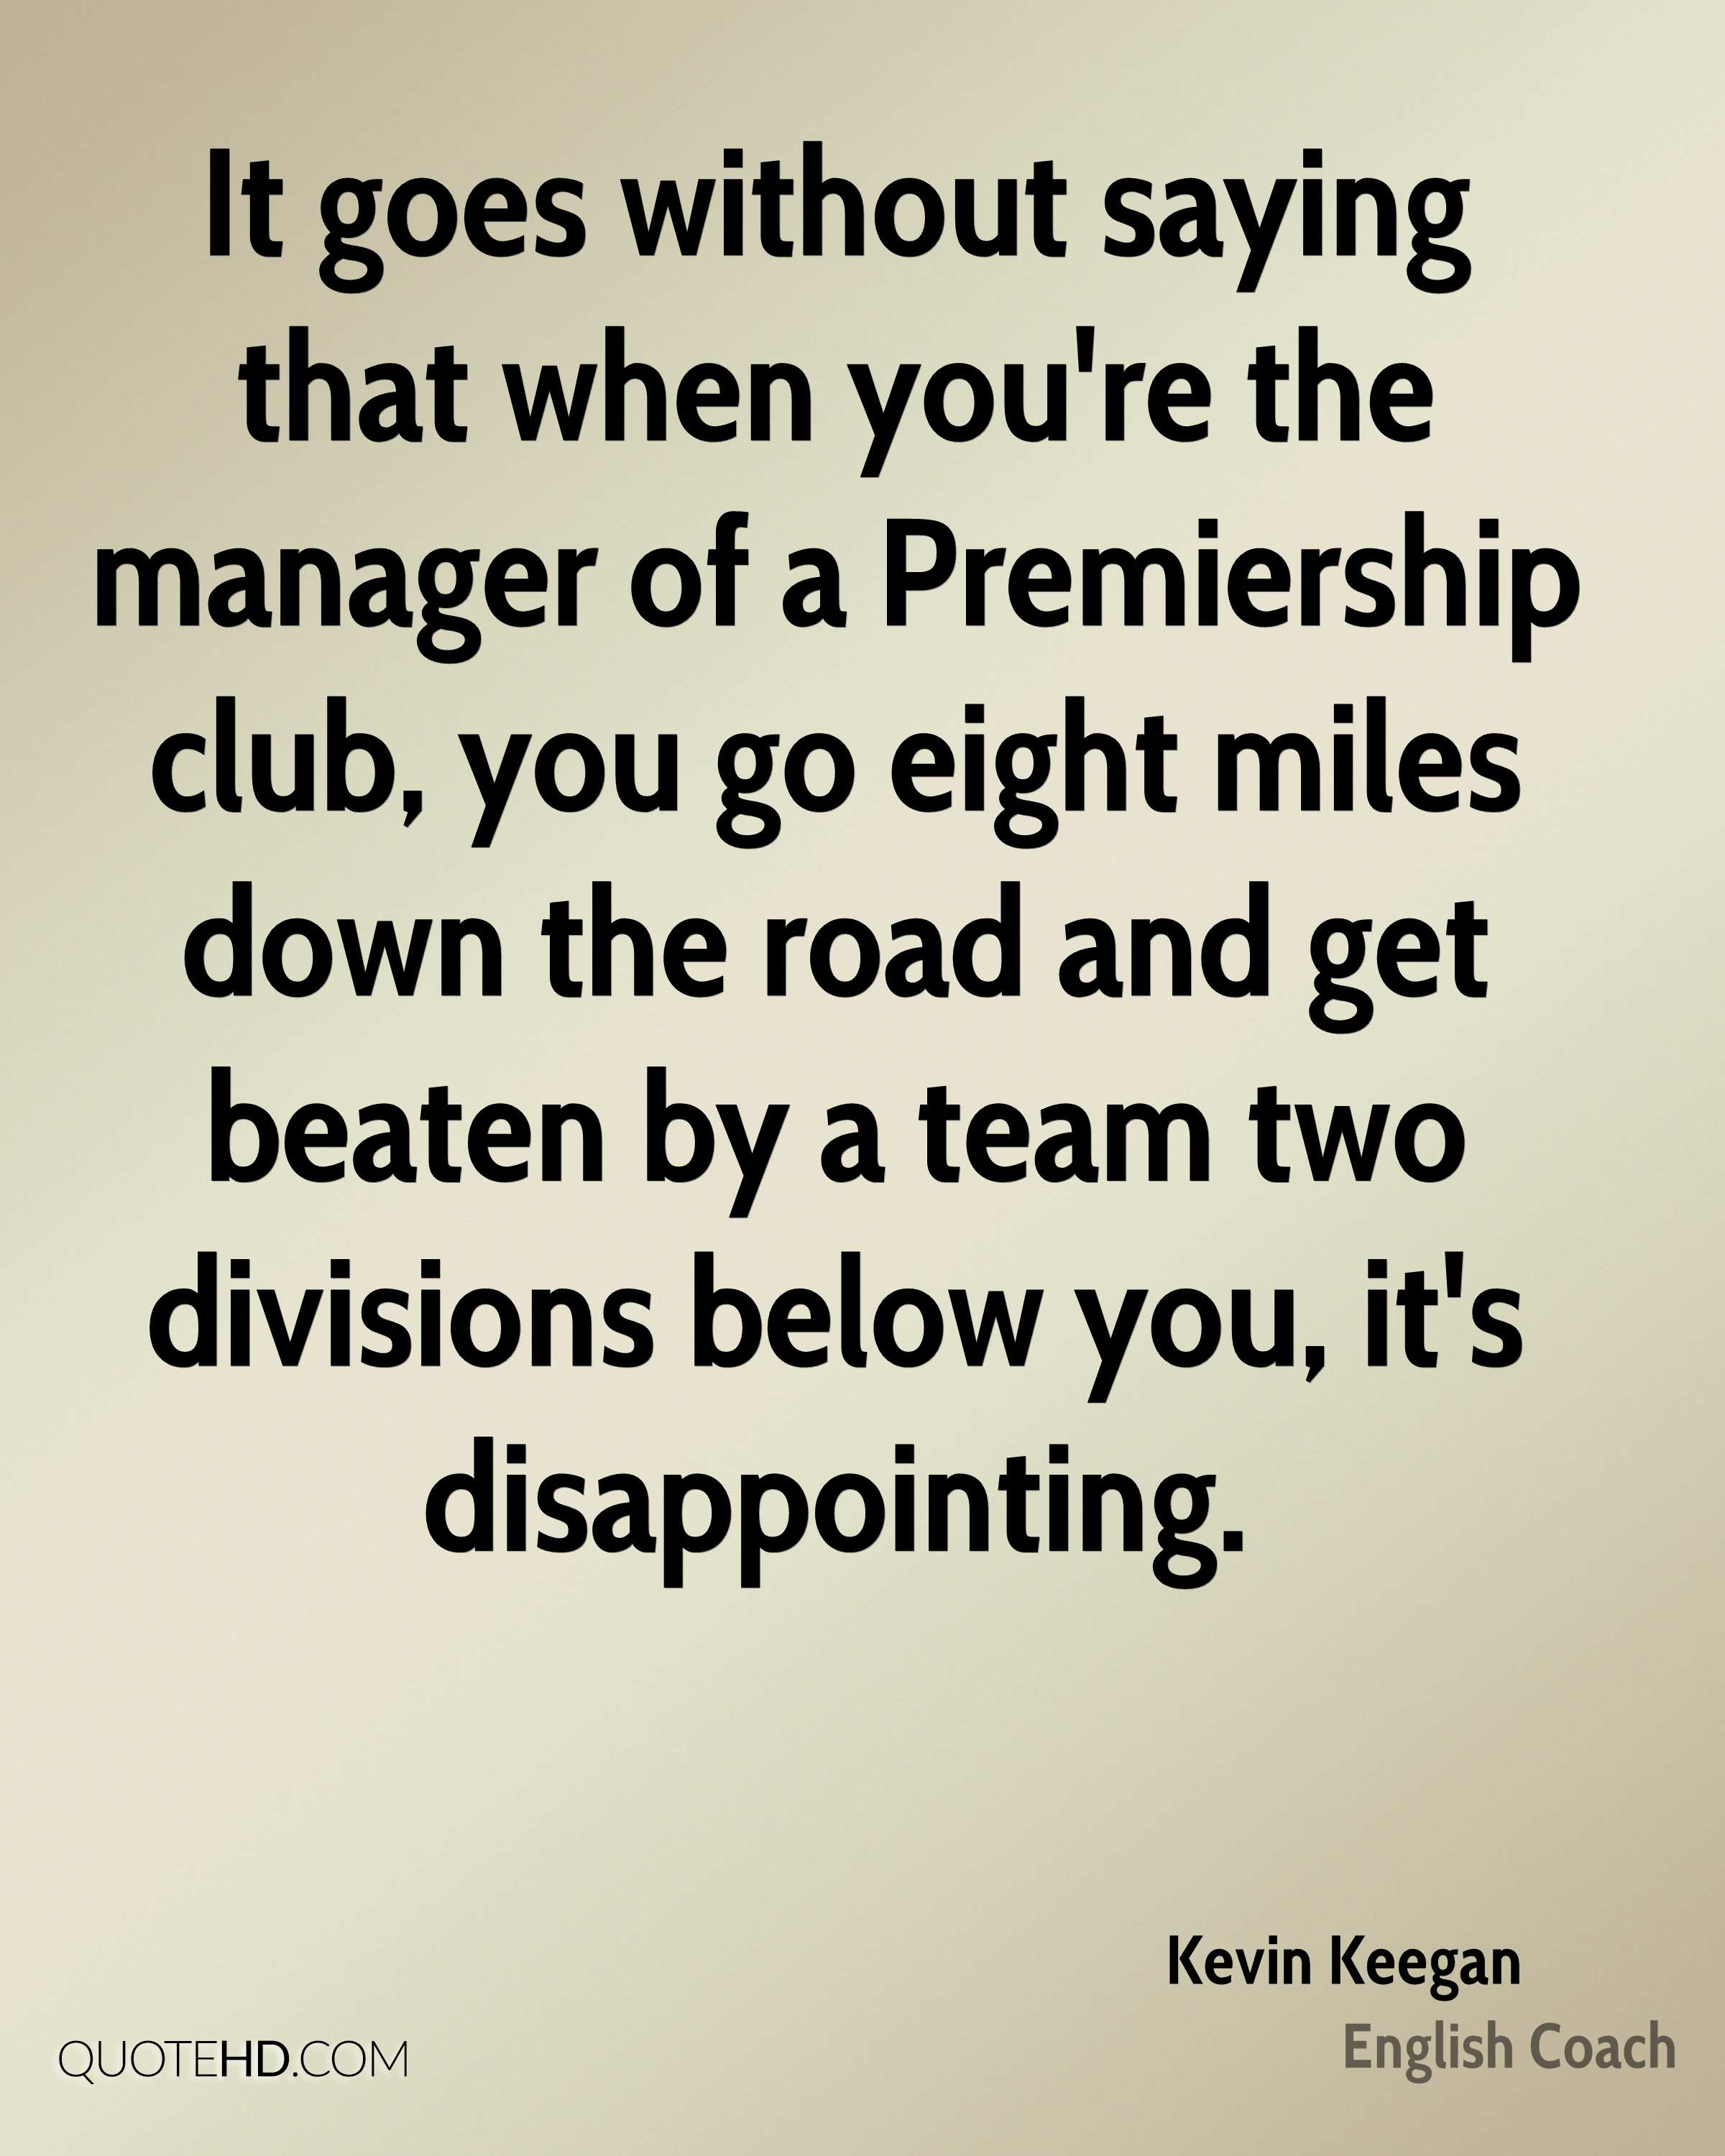 It goes without saying that when you're the manager of a Premiership club, you go eight miles down the road and get beaten by a team two divisions below you, it's disappointing.